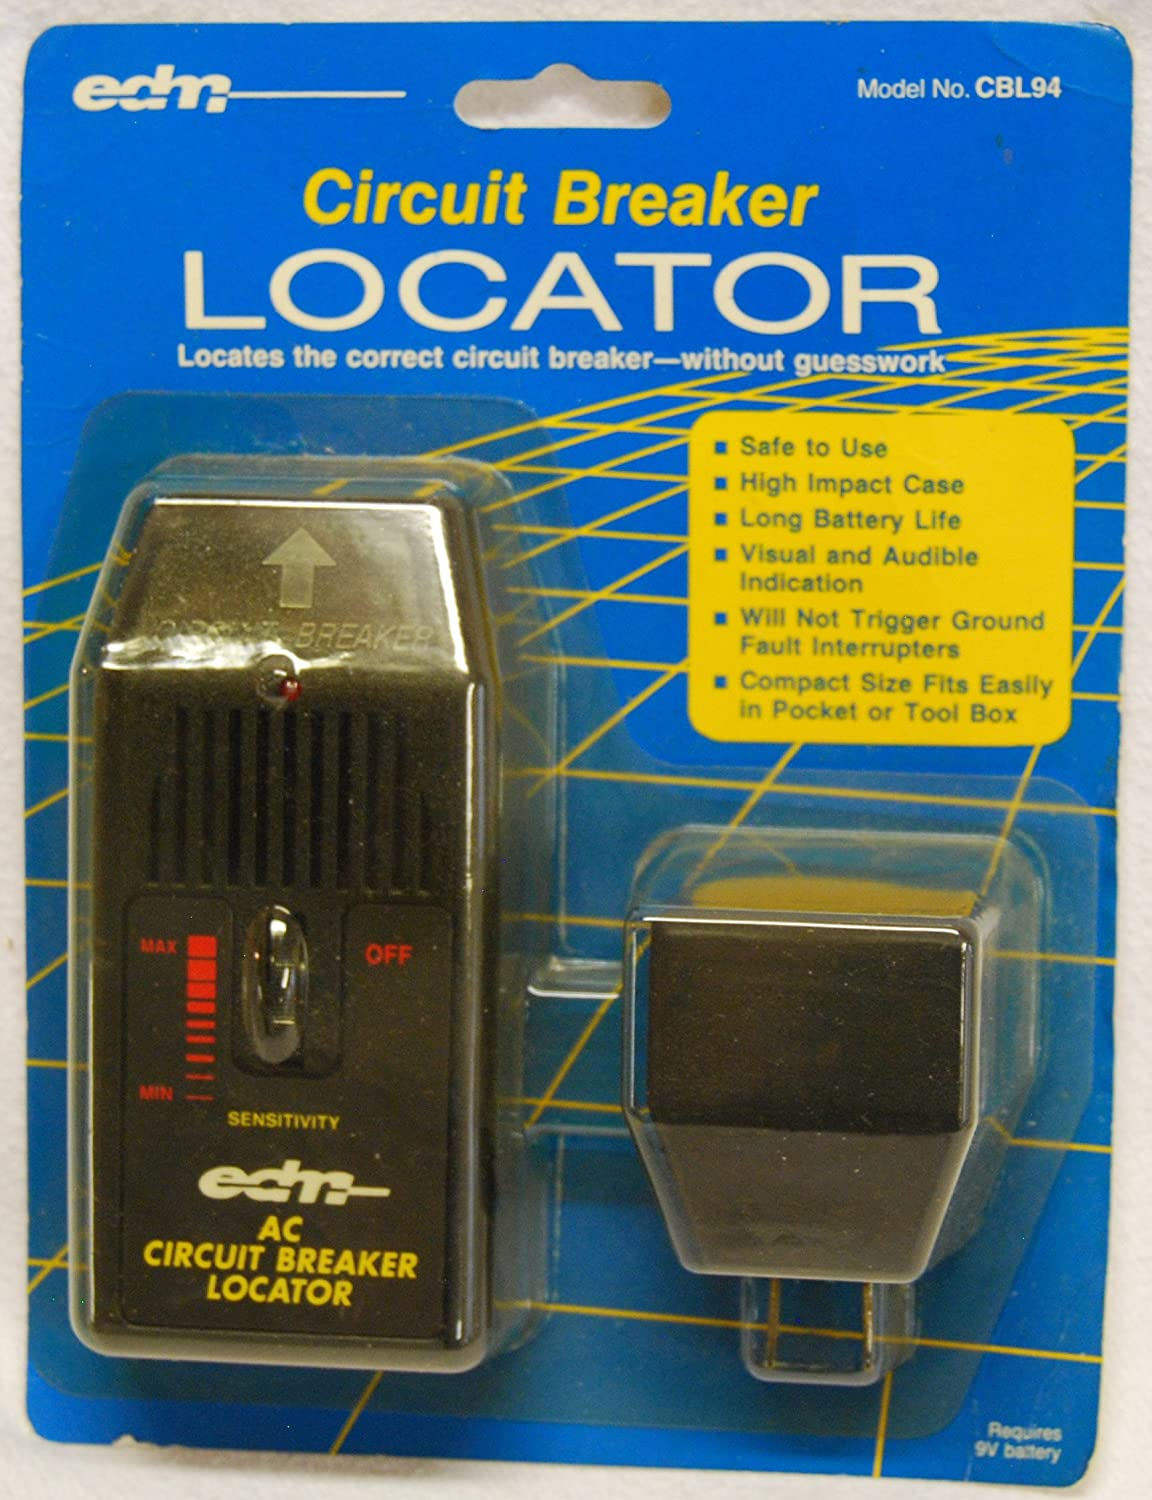 Circuit Breaker Locator Home Improvement Ac 110v 220v 15a 2p Elcb Earth Leakage Amazoncom